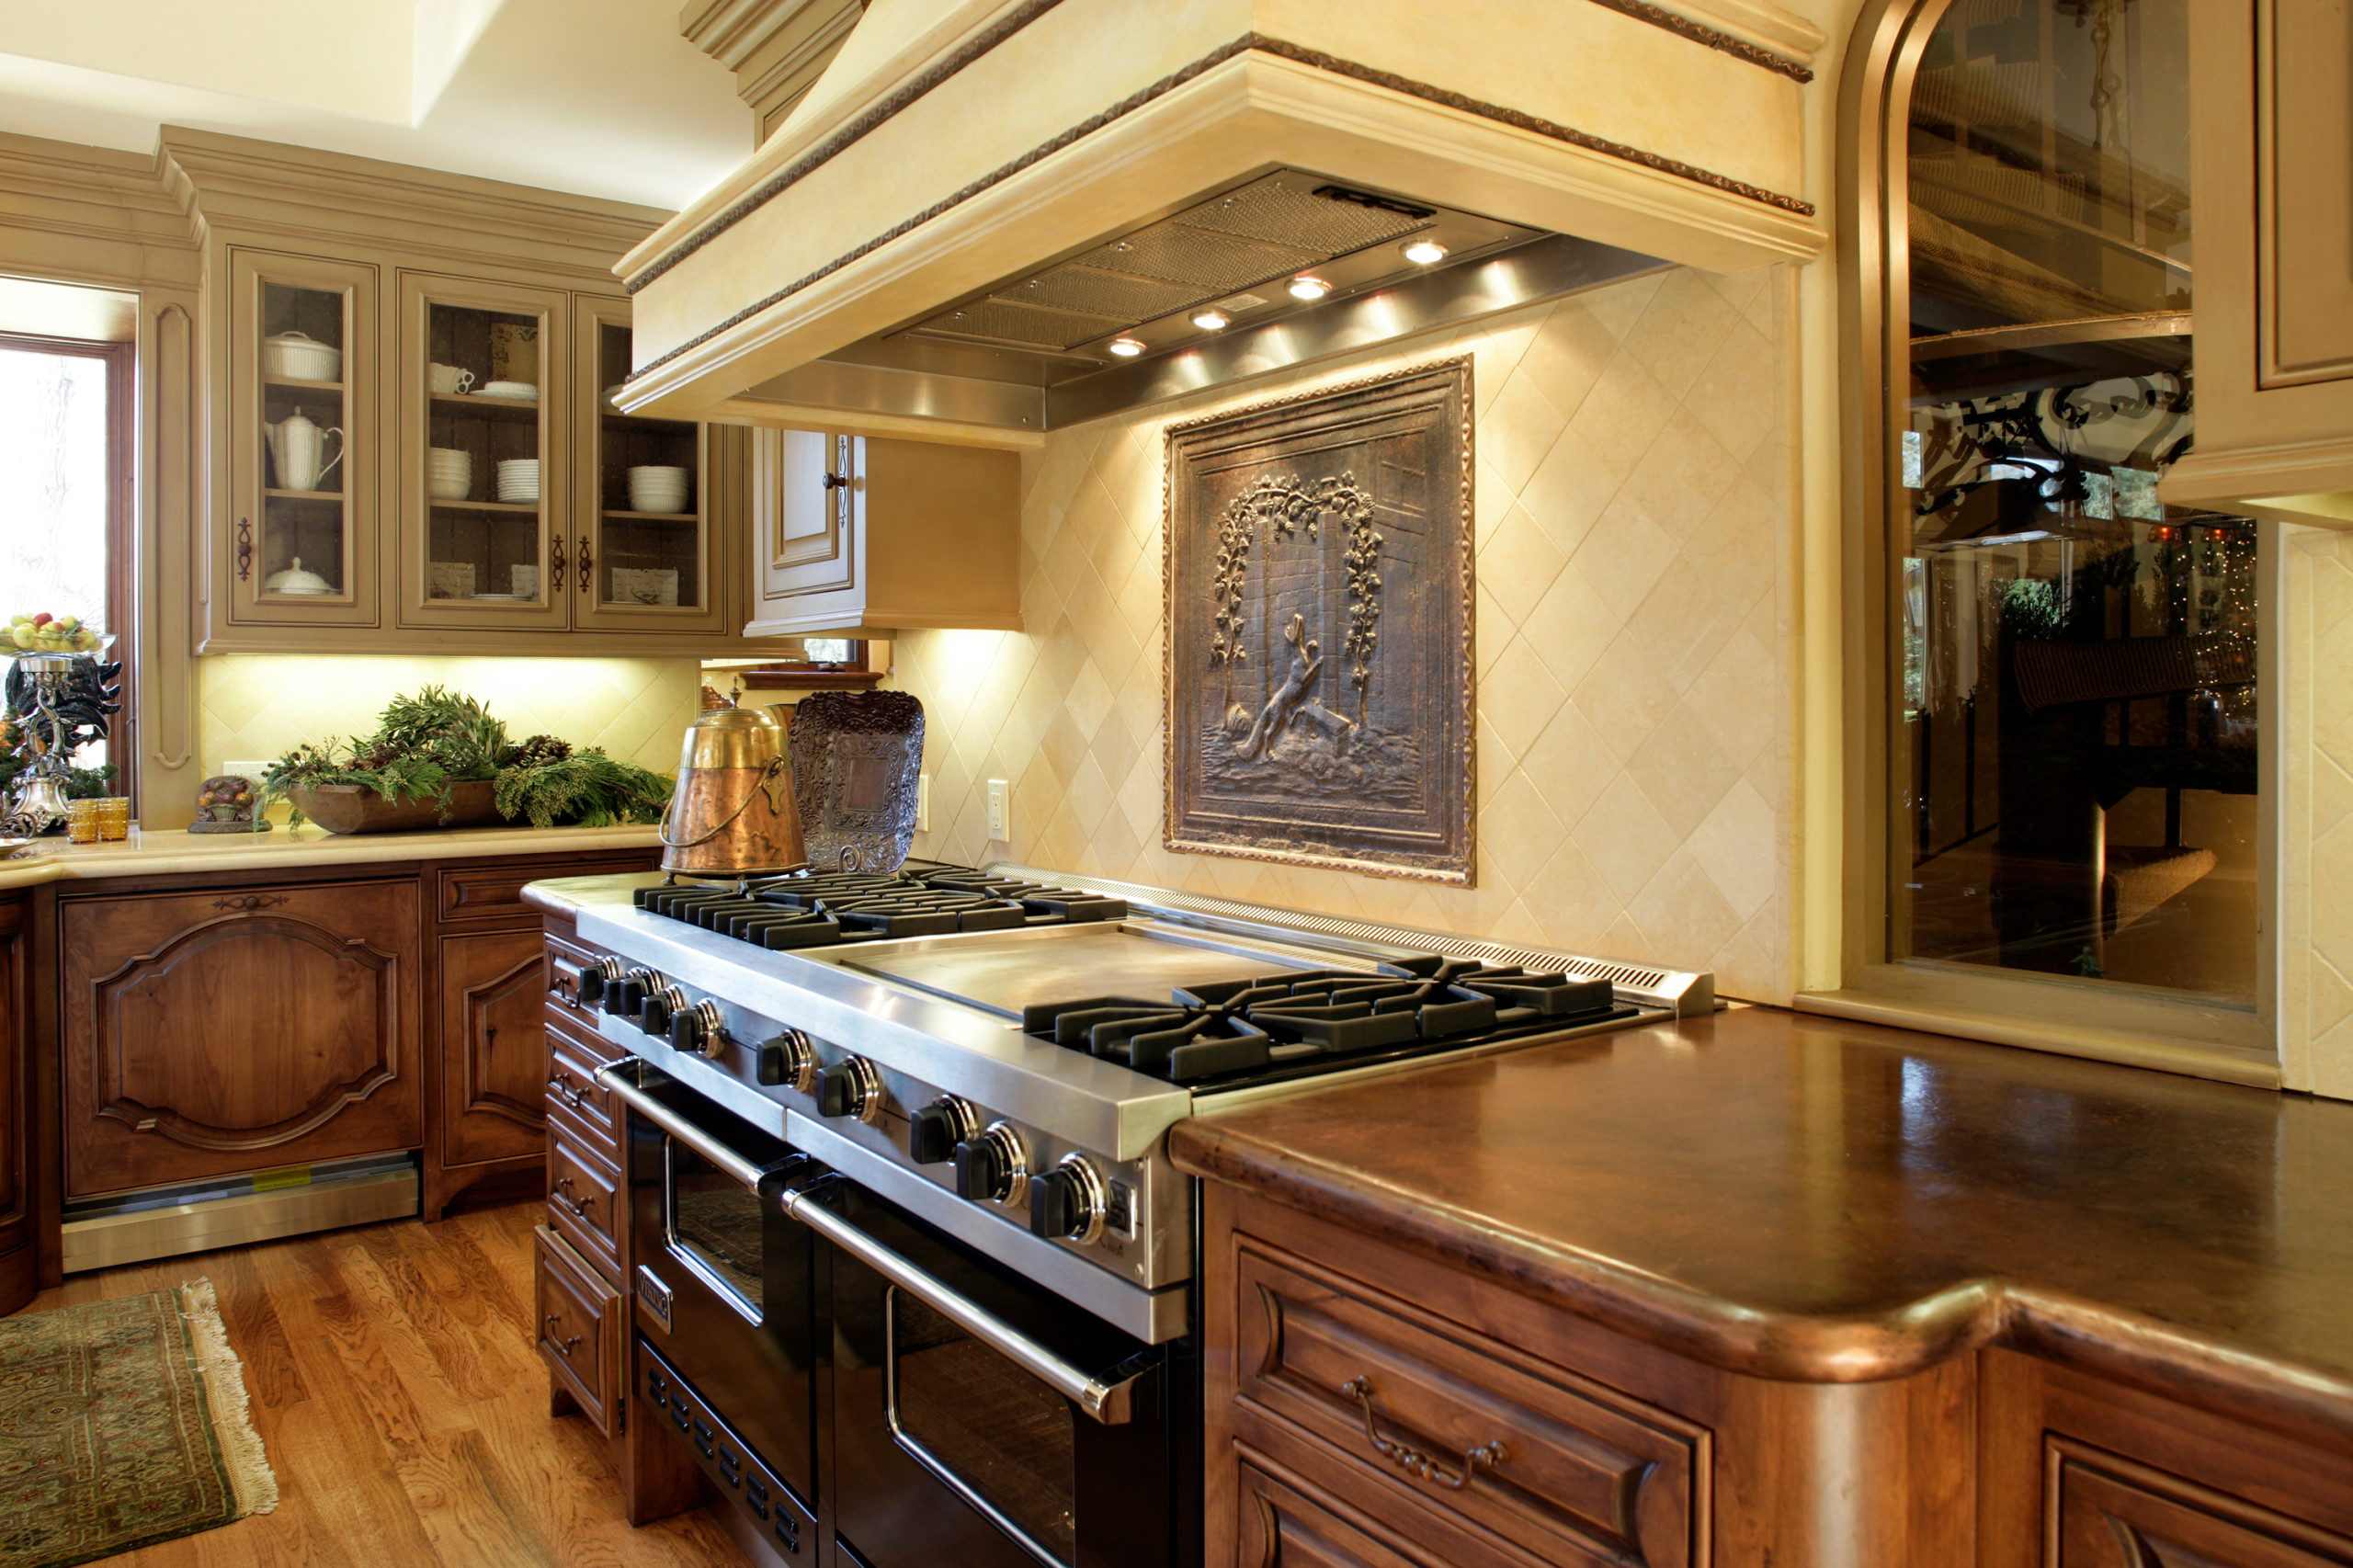 75 Beautiful Kitchen With Copper Countertops And Beige Backsplash Pictures Ideas November 2020 Houzz